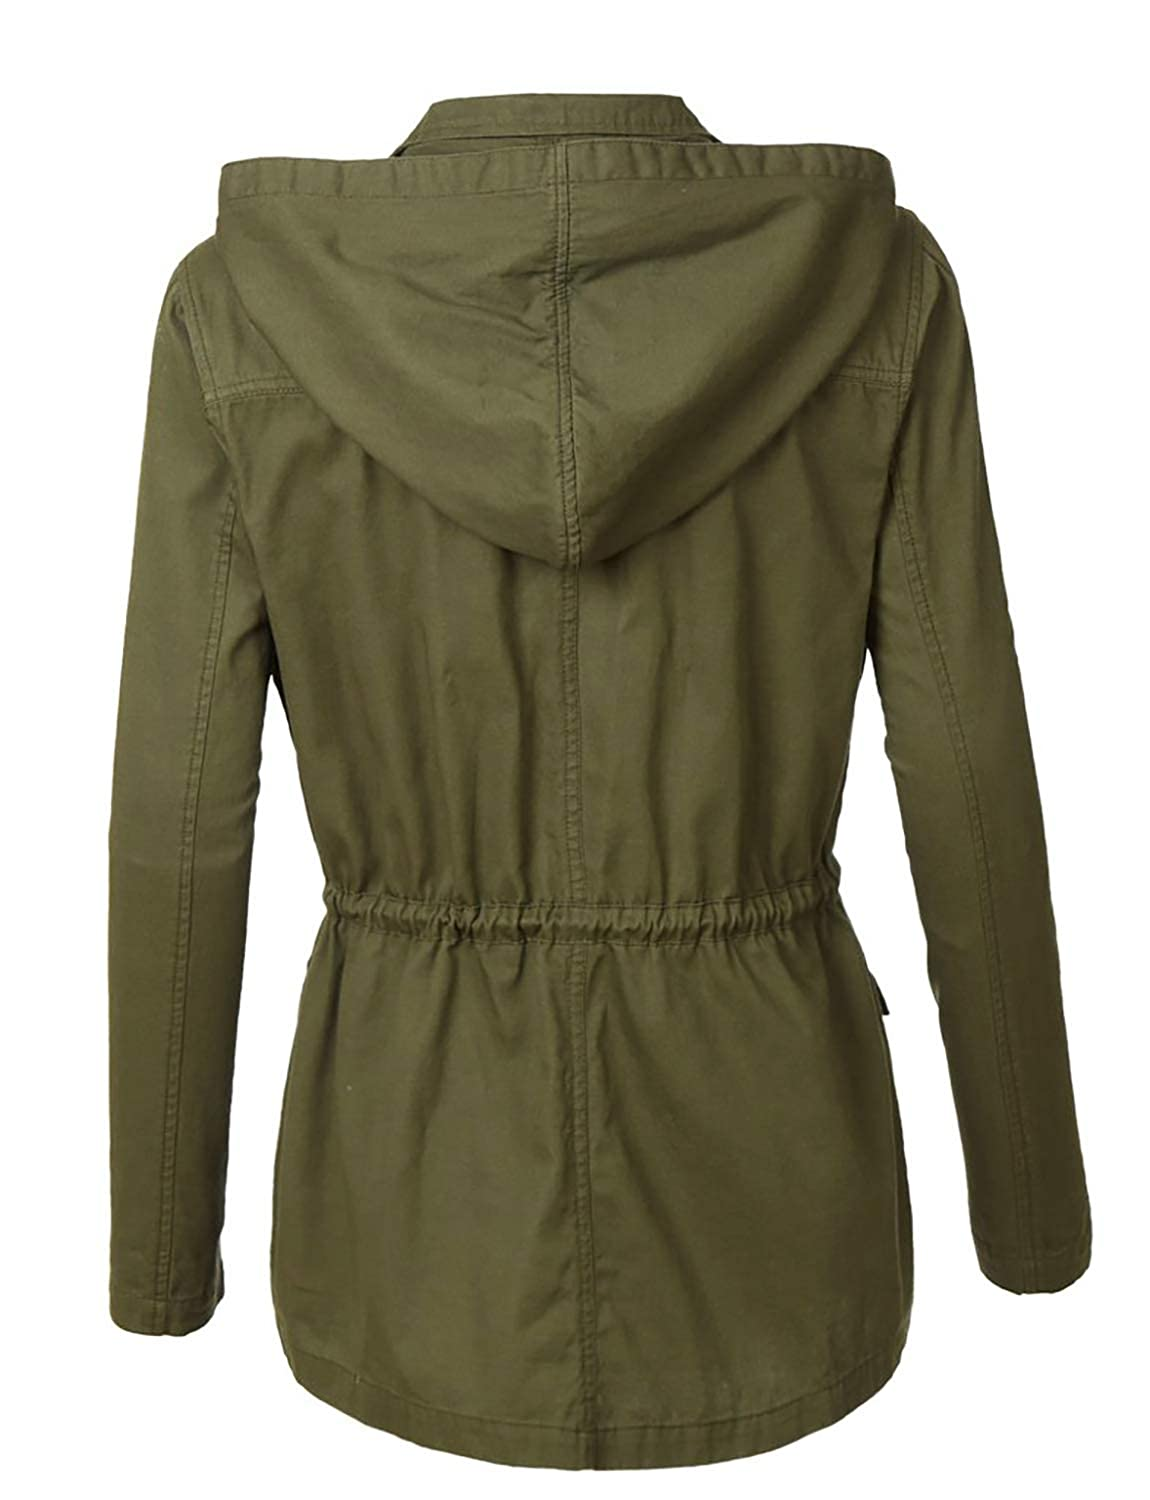 LE3NO Lightweight Casual Military Hooded Anoraks Safari Jacket with Drawstring for S-3XL